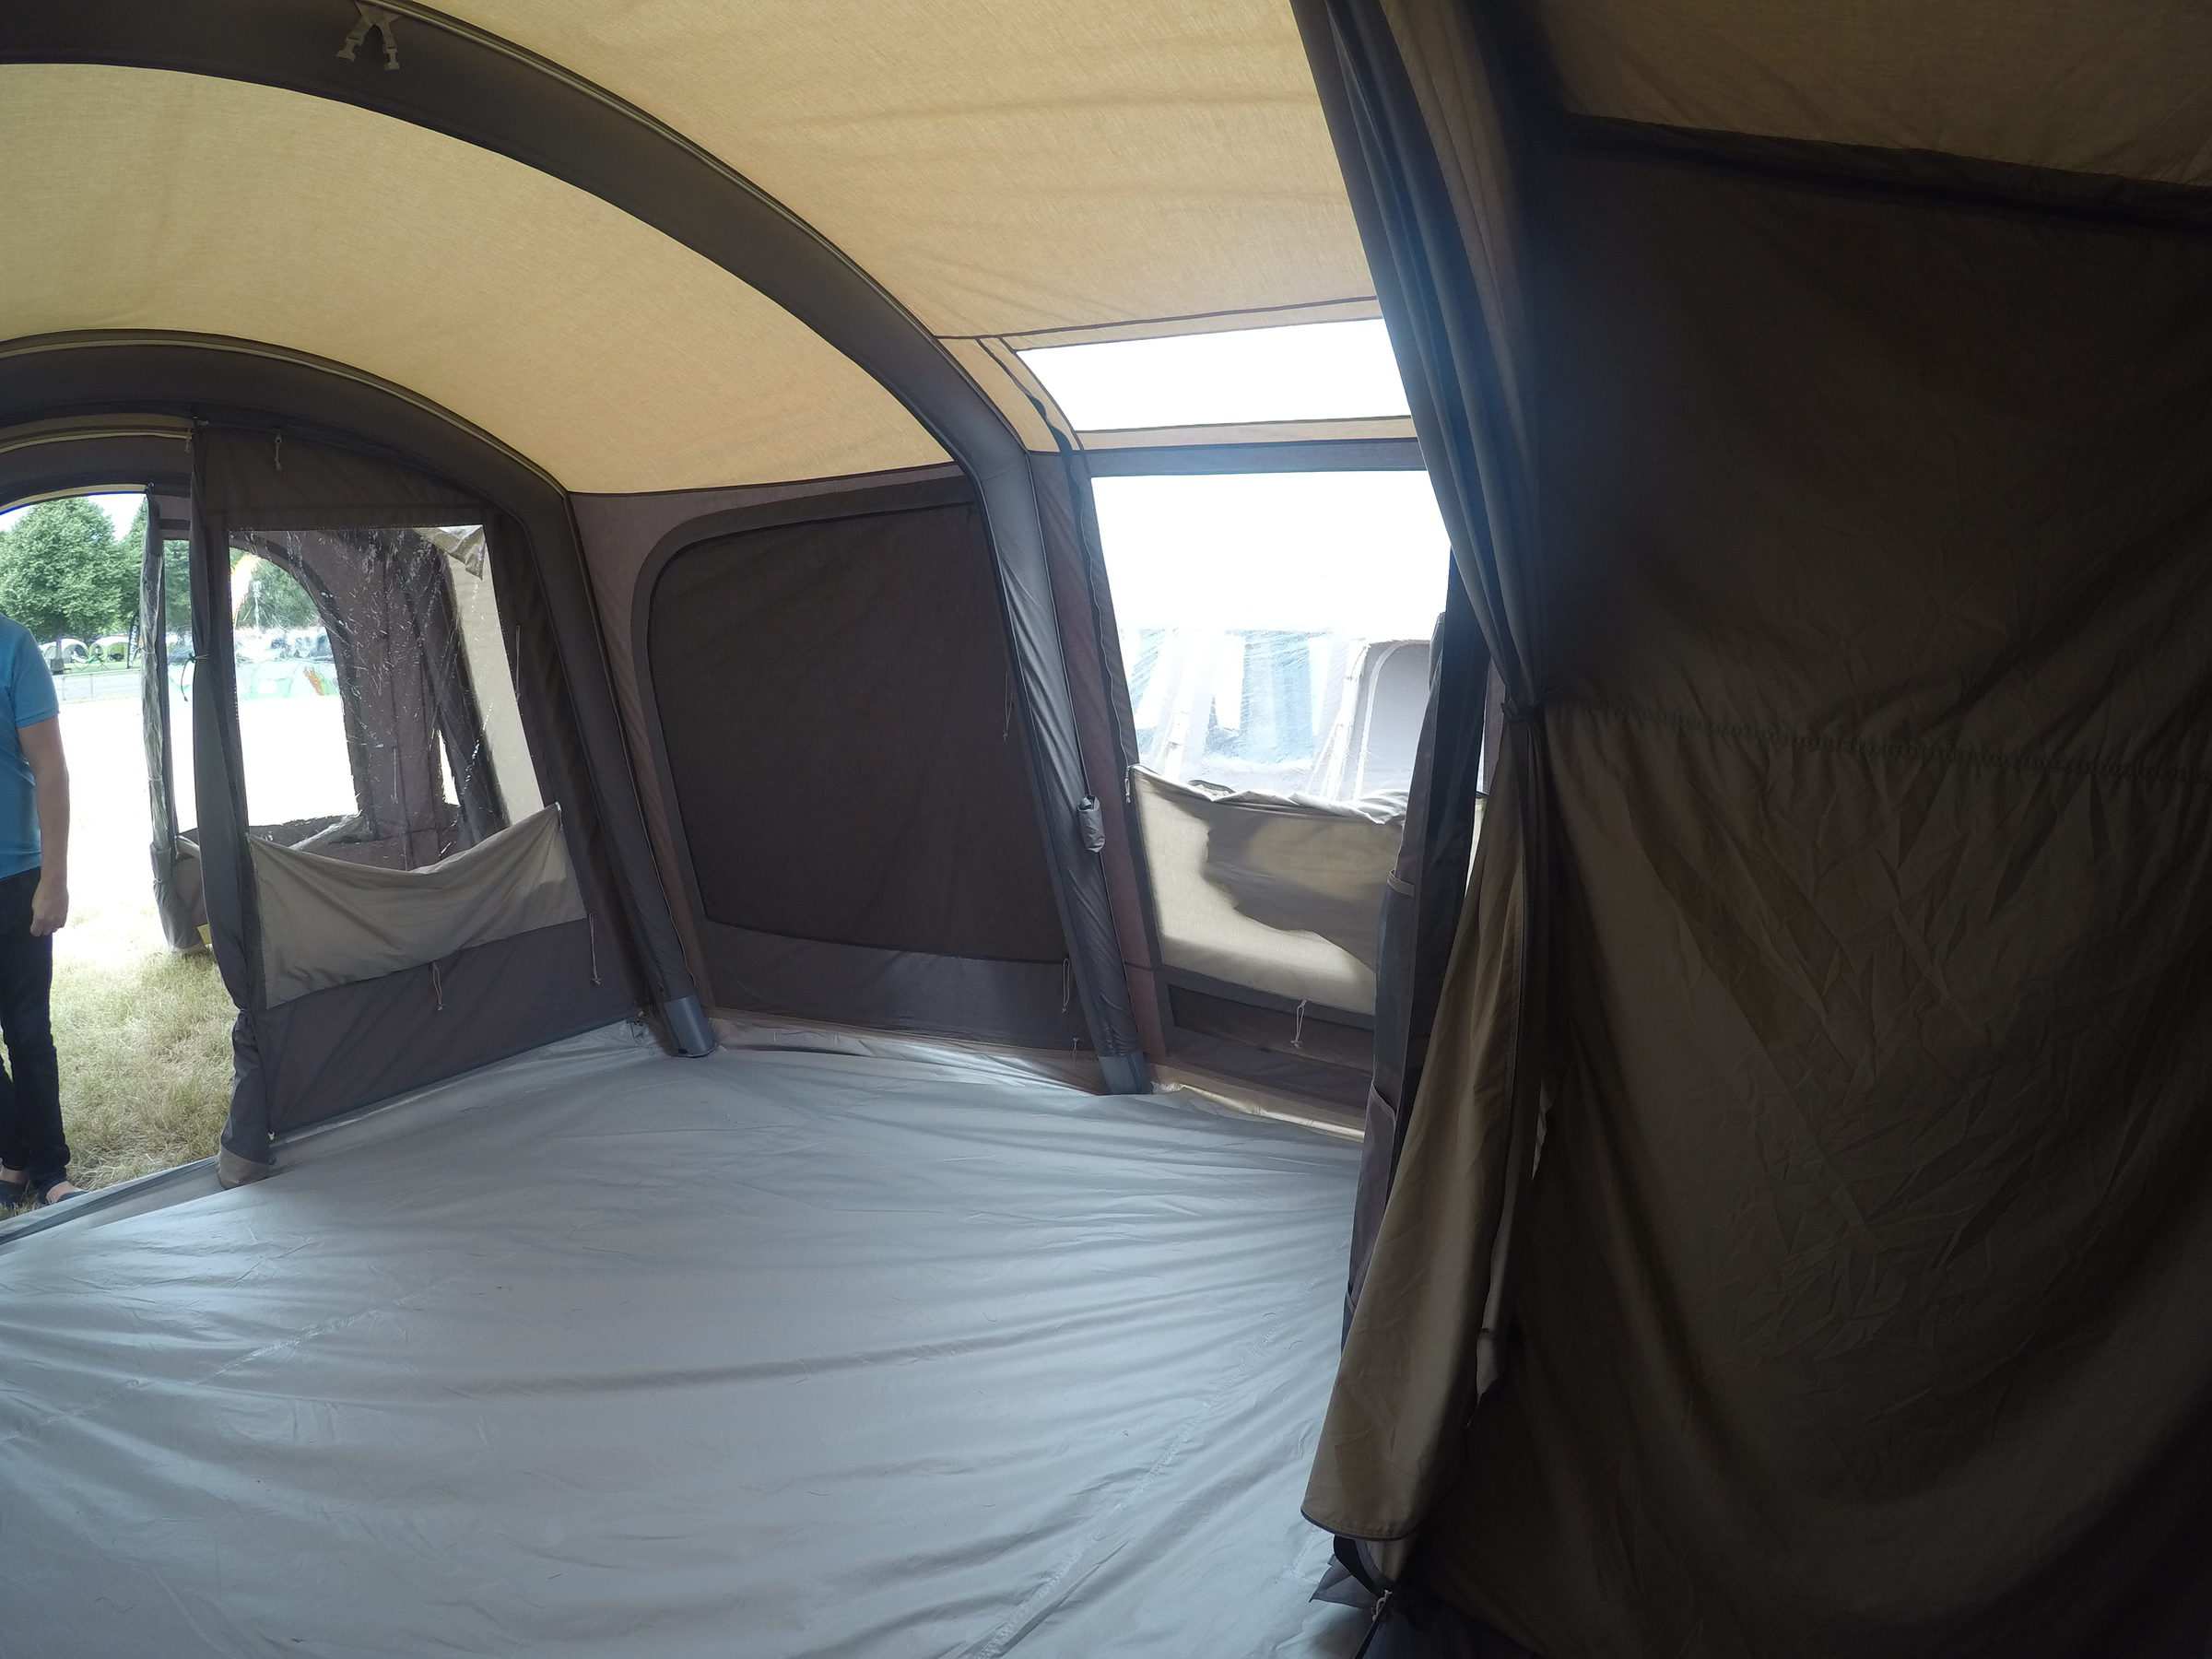 Vango Maritsa Tc 600Xl Airbeam Tent 201810